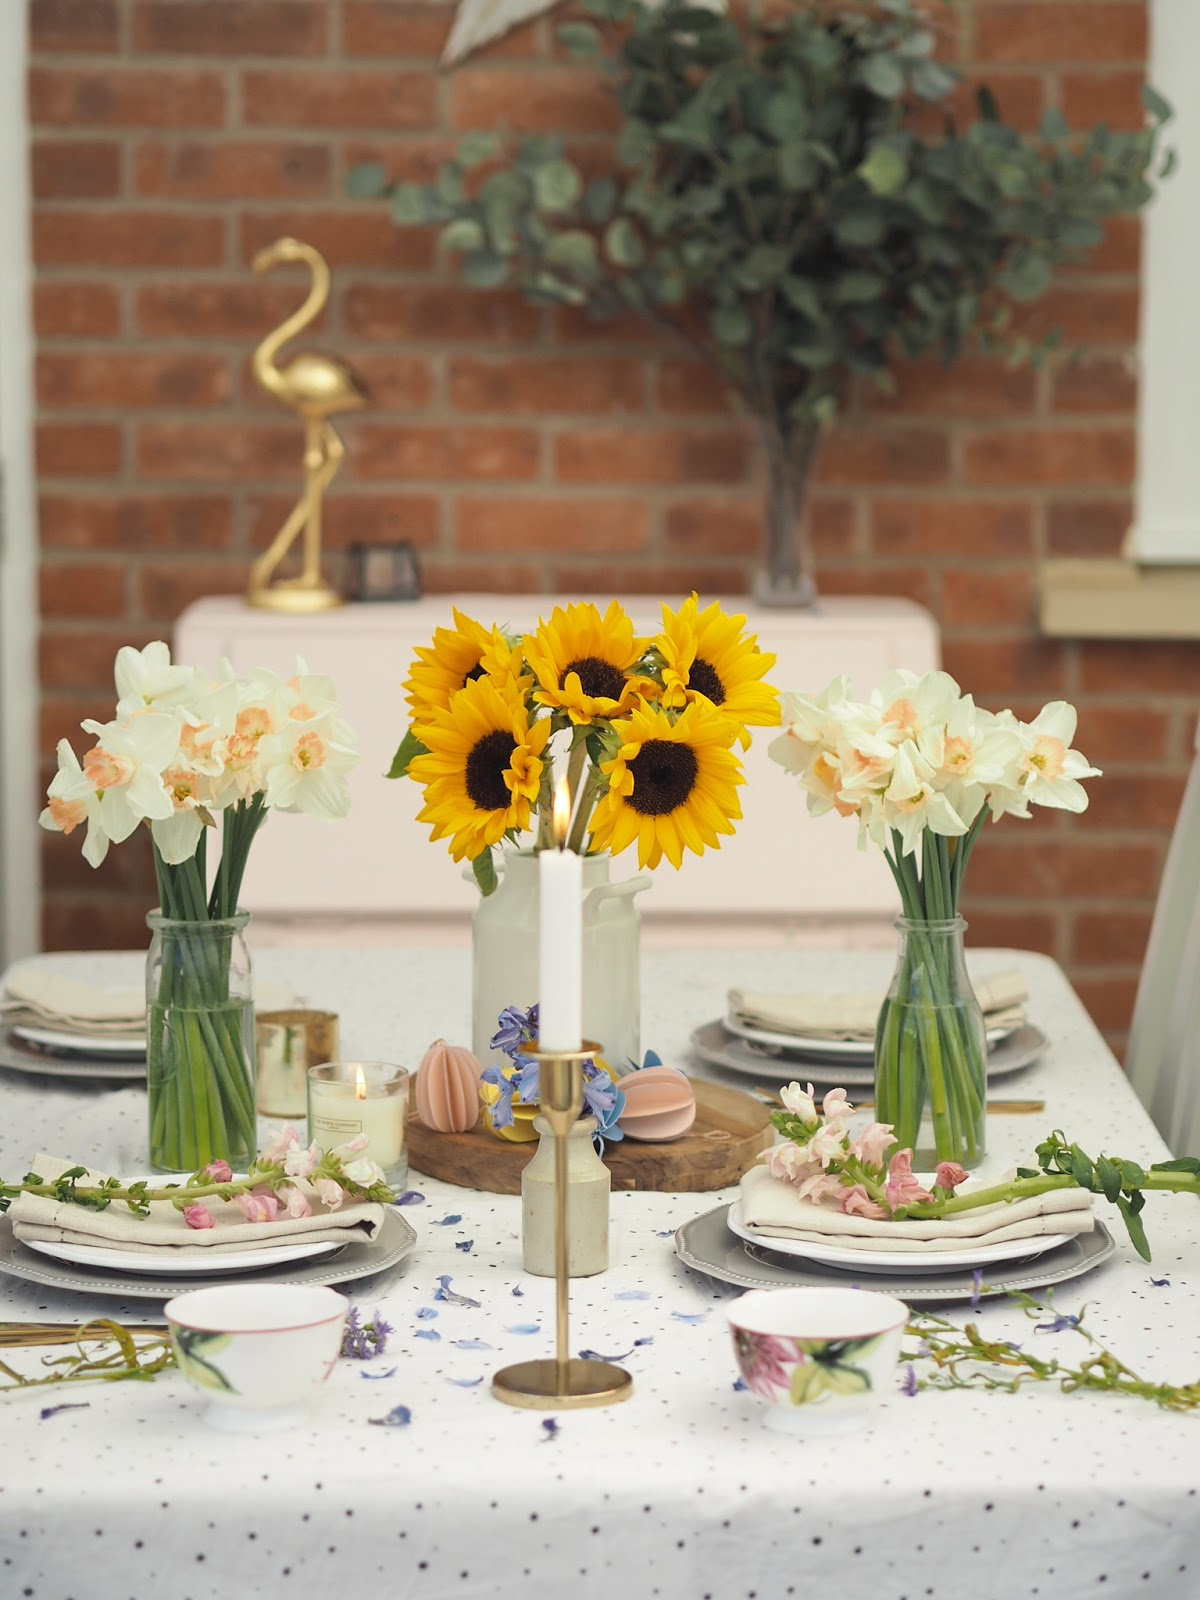 Simple ways to decorate your dining table in your home for Easter. Ideas for spring decorations, and table settings from fresh flowers, to twig trees, and DIY paper decorations with a pretty pastel colour scheme. Inspiration for styling your home for Easter Sunday lunch on a budget, and using things you can find laying around at home.